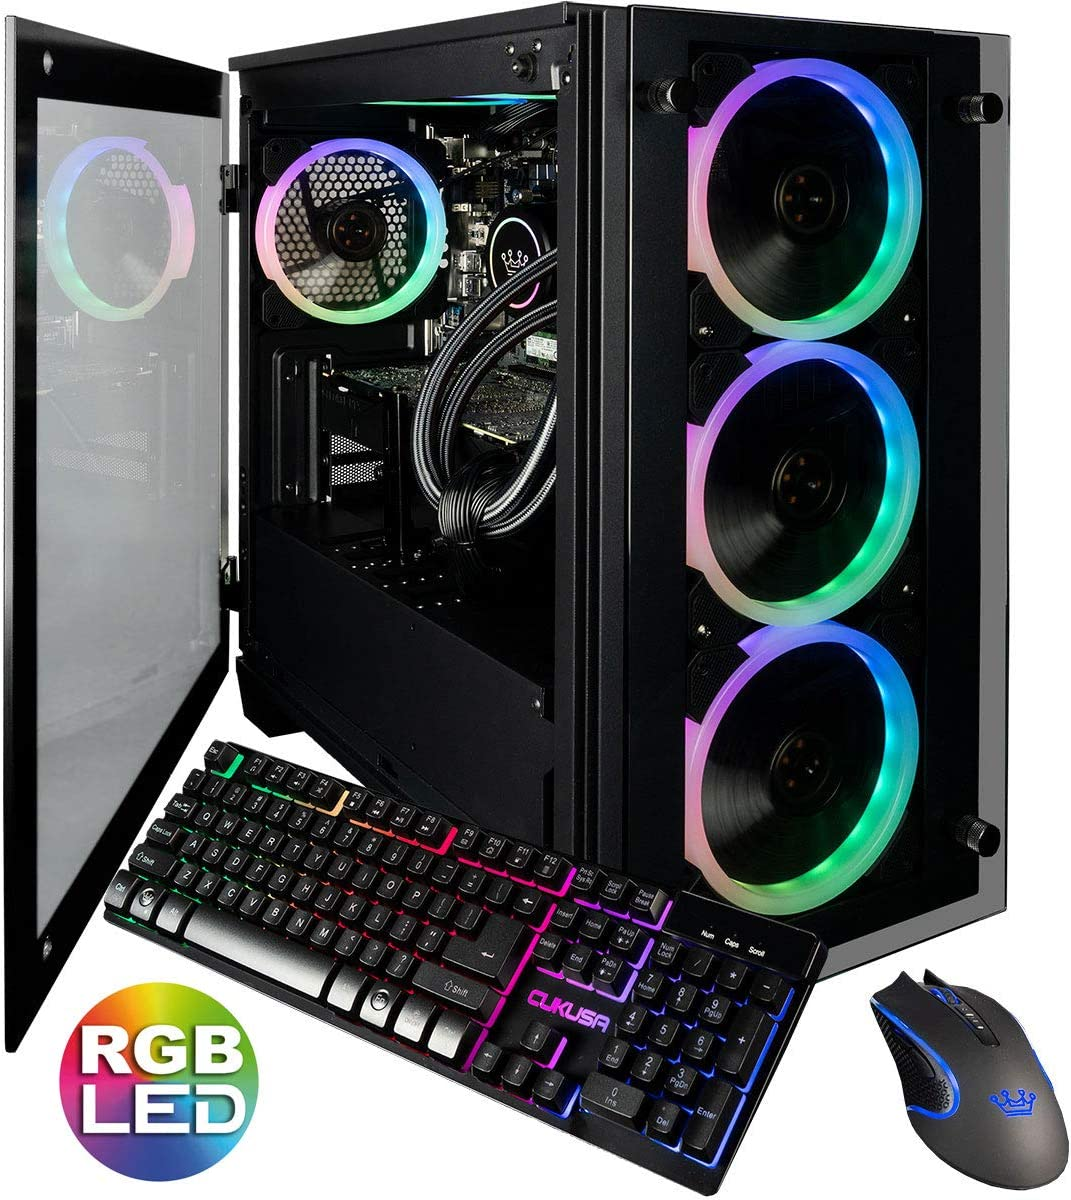 CUK Stratos Micro Gamer PC (Liquid Cooled 5GHz 8 Core Intel Core i9-9900KF, 64GB RAM, 2TB NVMe SSD + 2TB, NVIDIA GeForce RTX 2080 Ti, 750W Gold PSU, Windows 10) Best Tower Desktop Computer for Gaming